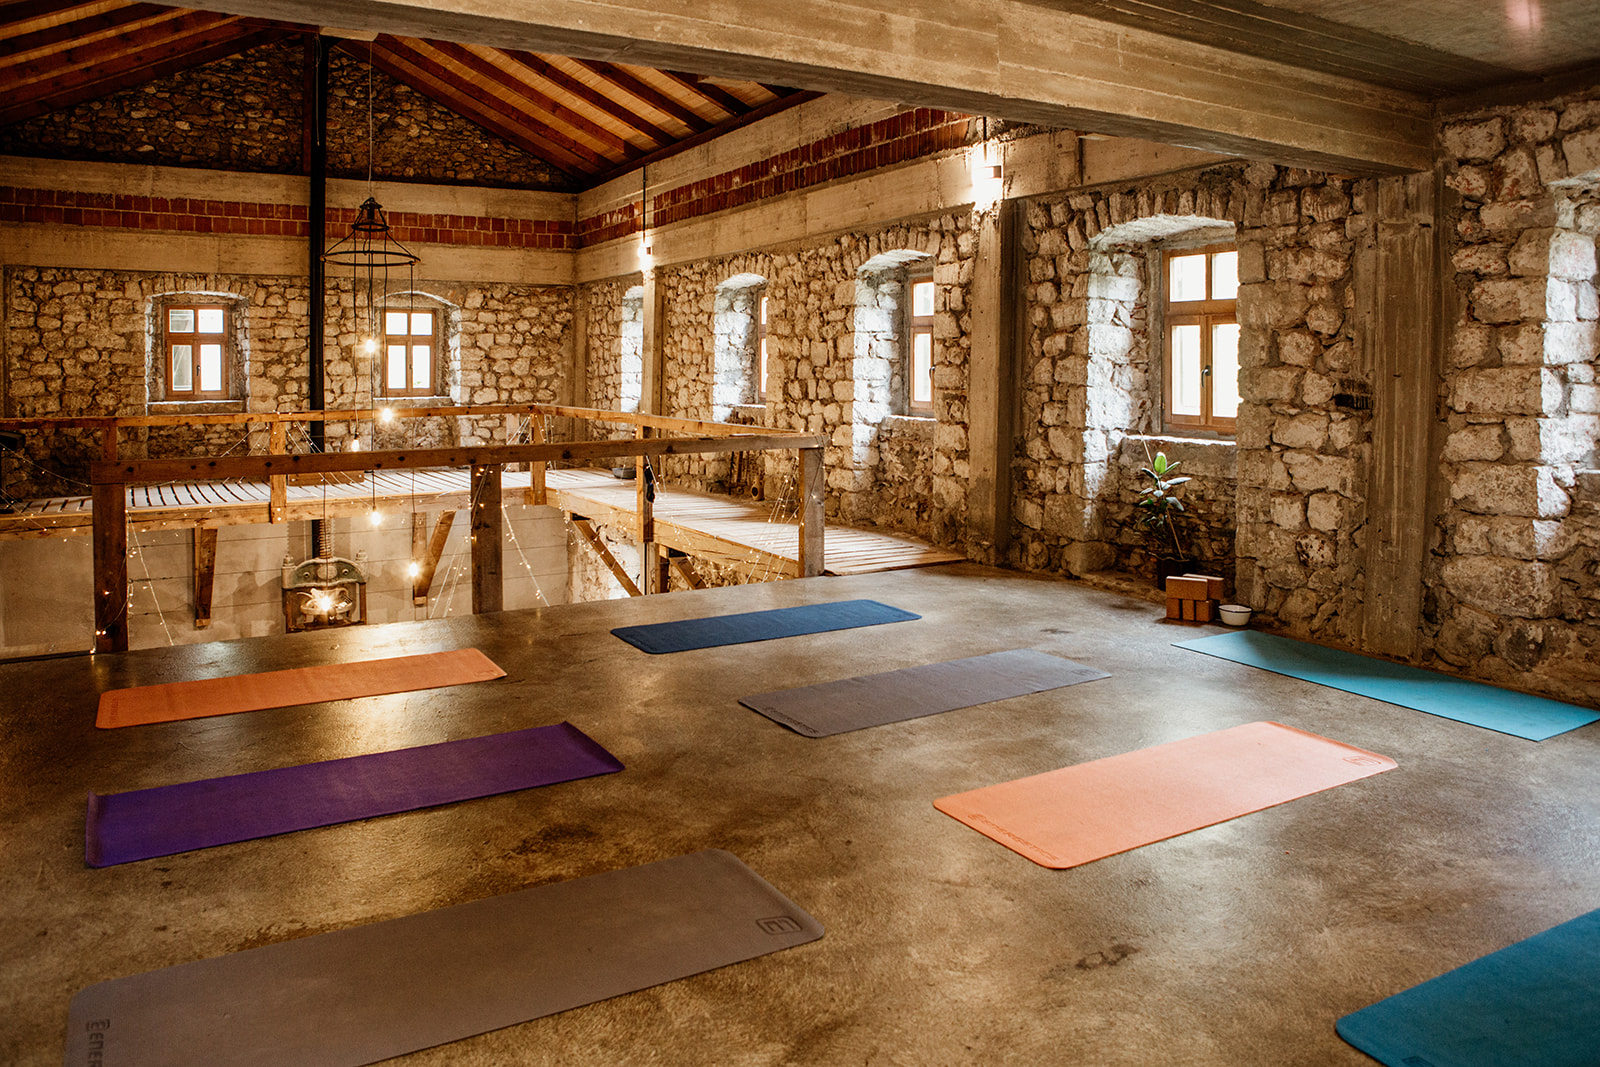 yoga space with mats down - hiking yoga holiday montenegro